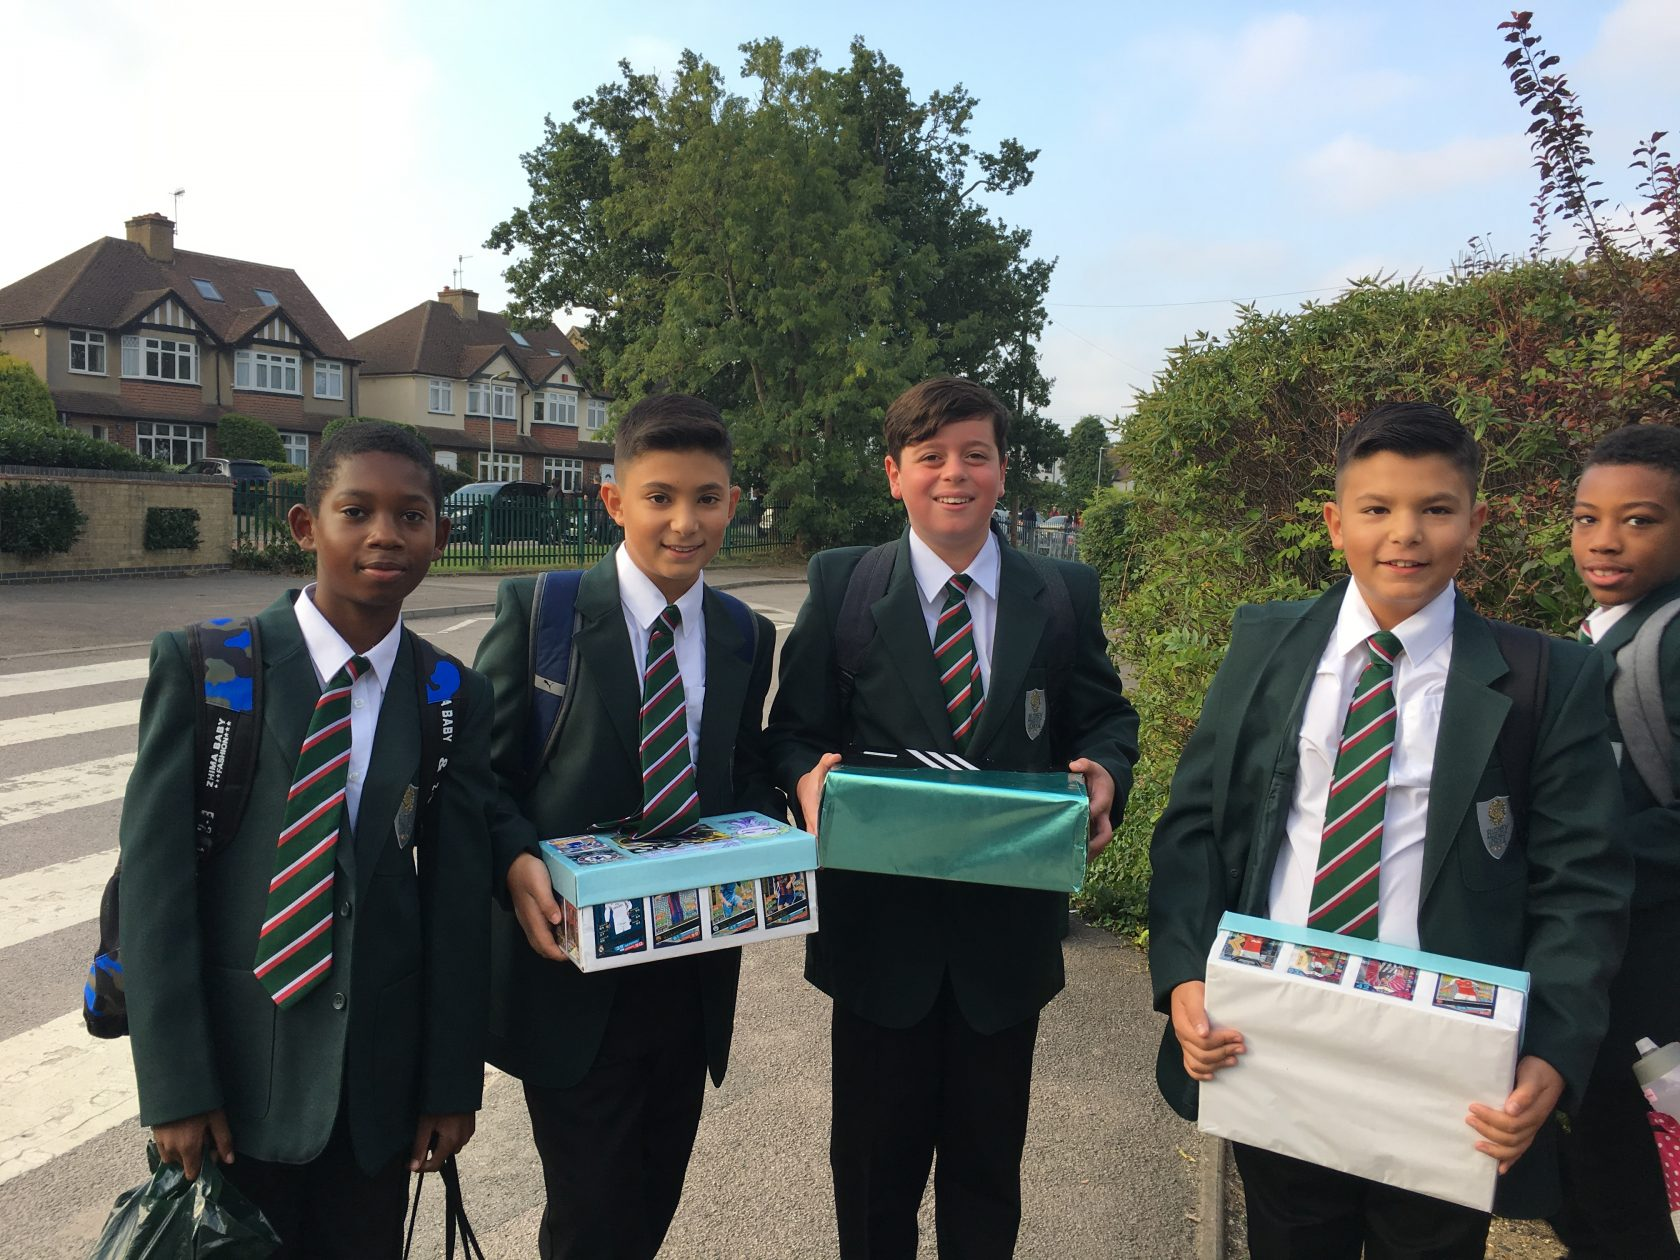 Bushey Meads School – One of Hertfordshire Hottest Secondary Schools!